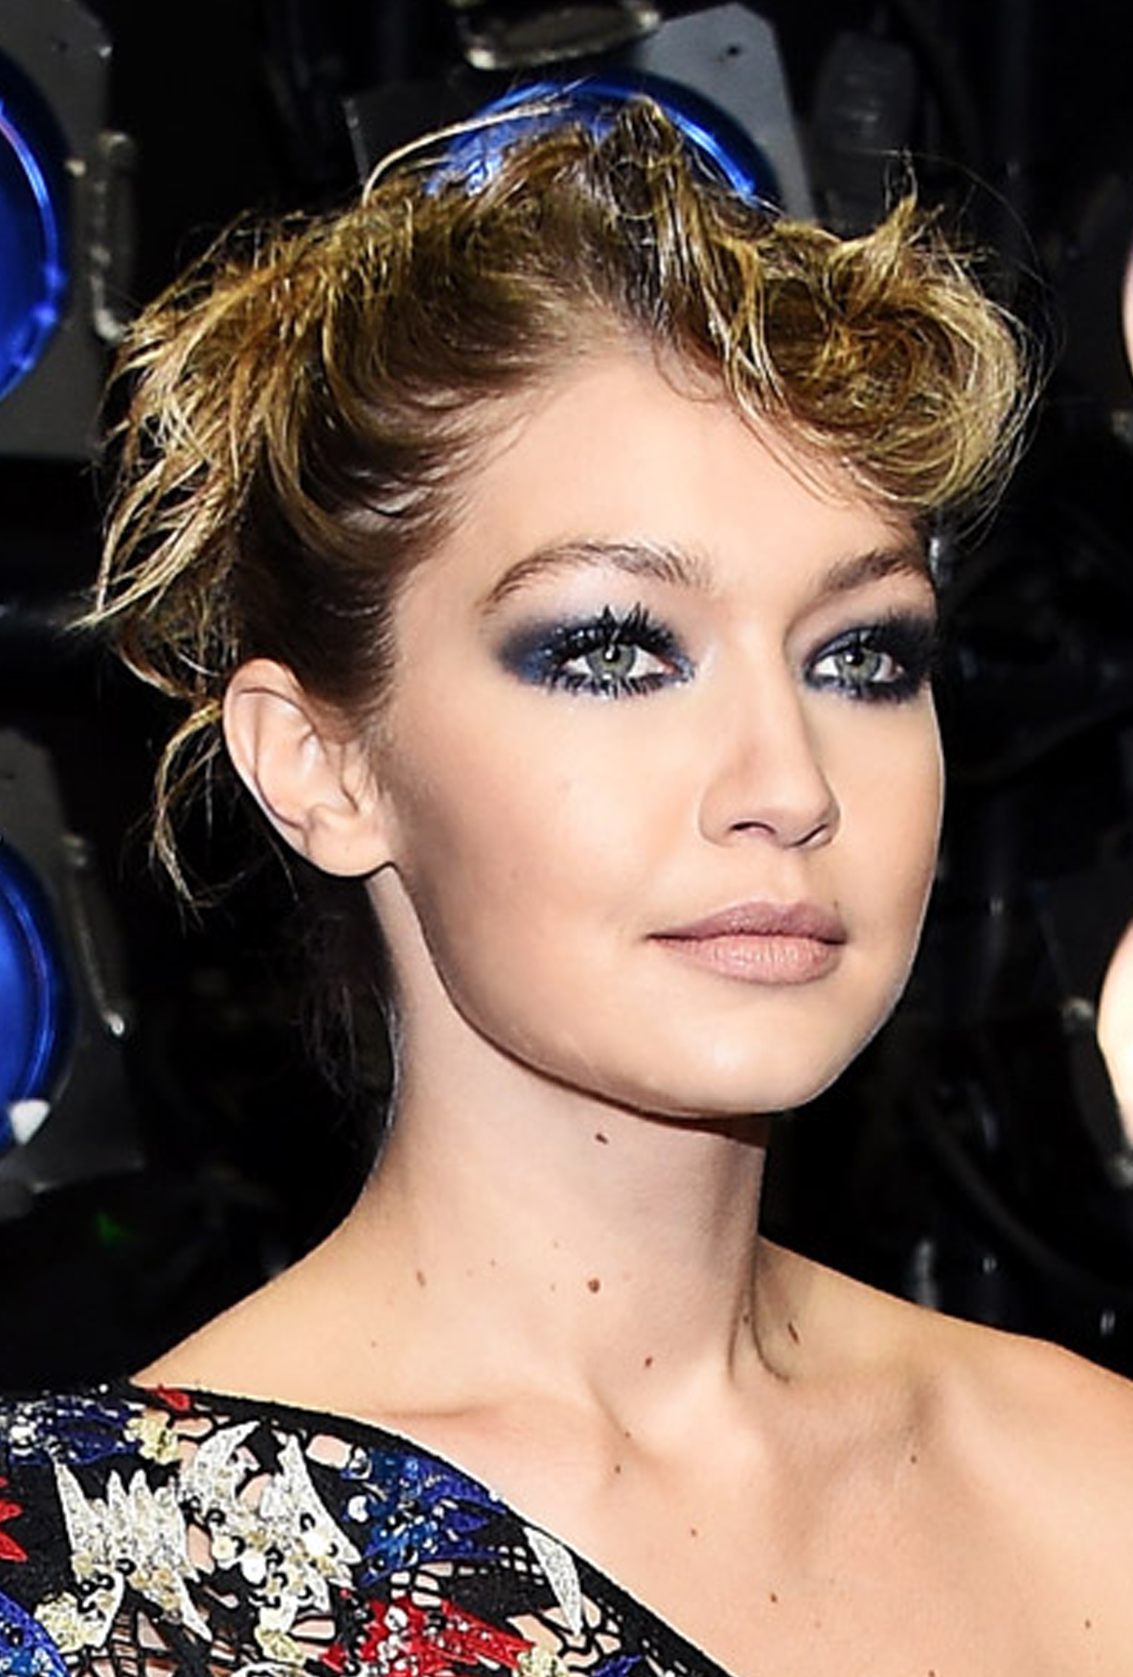 7 Makes Poderosas de Gigi Hadid 3